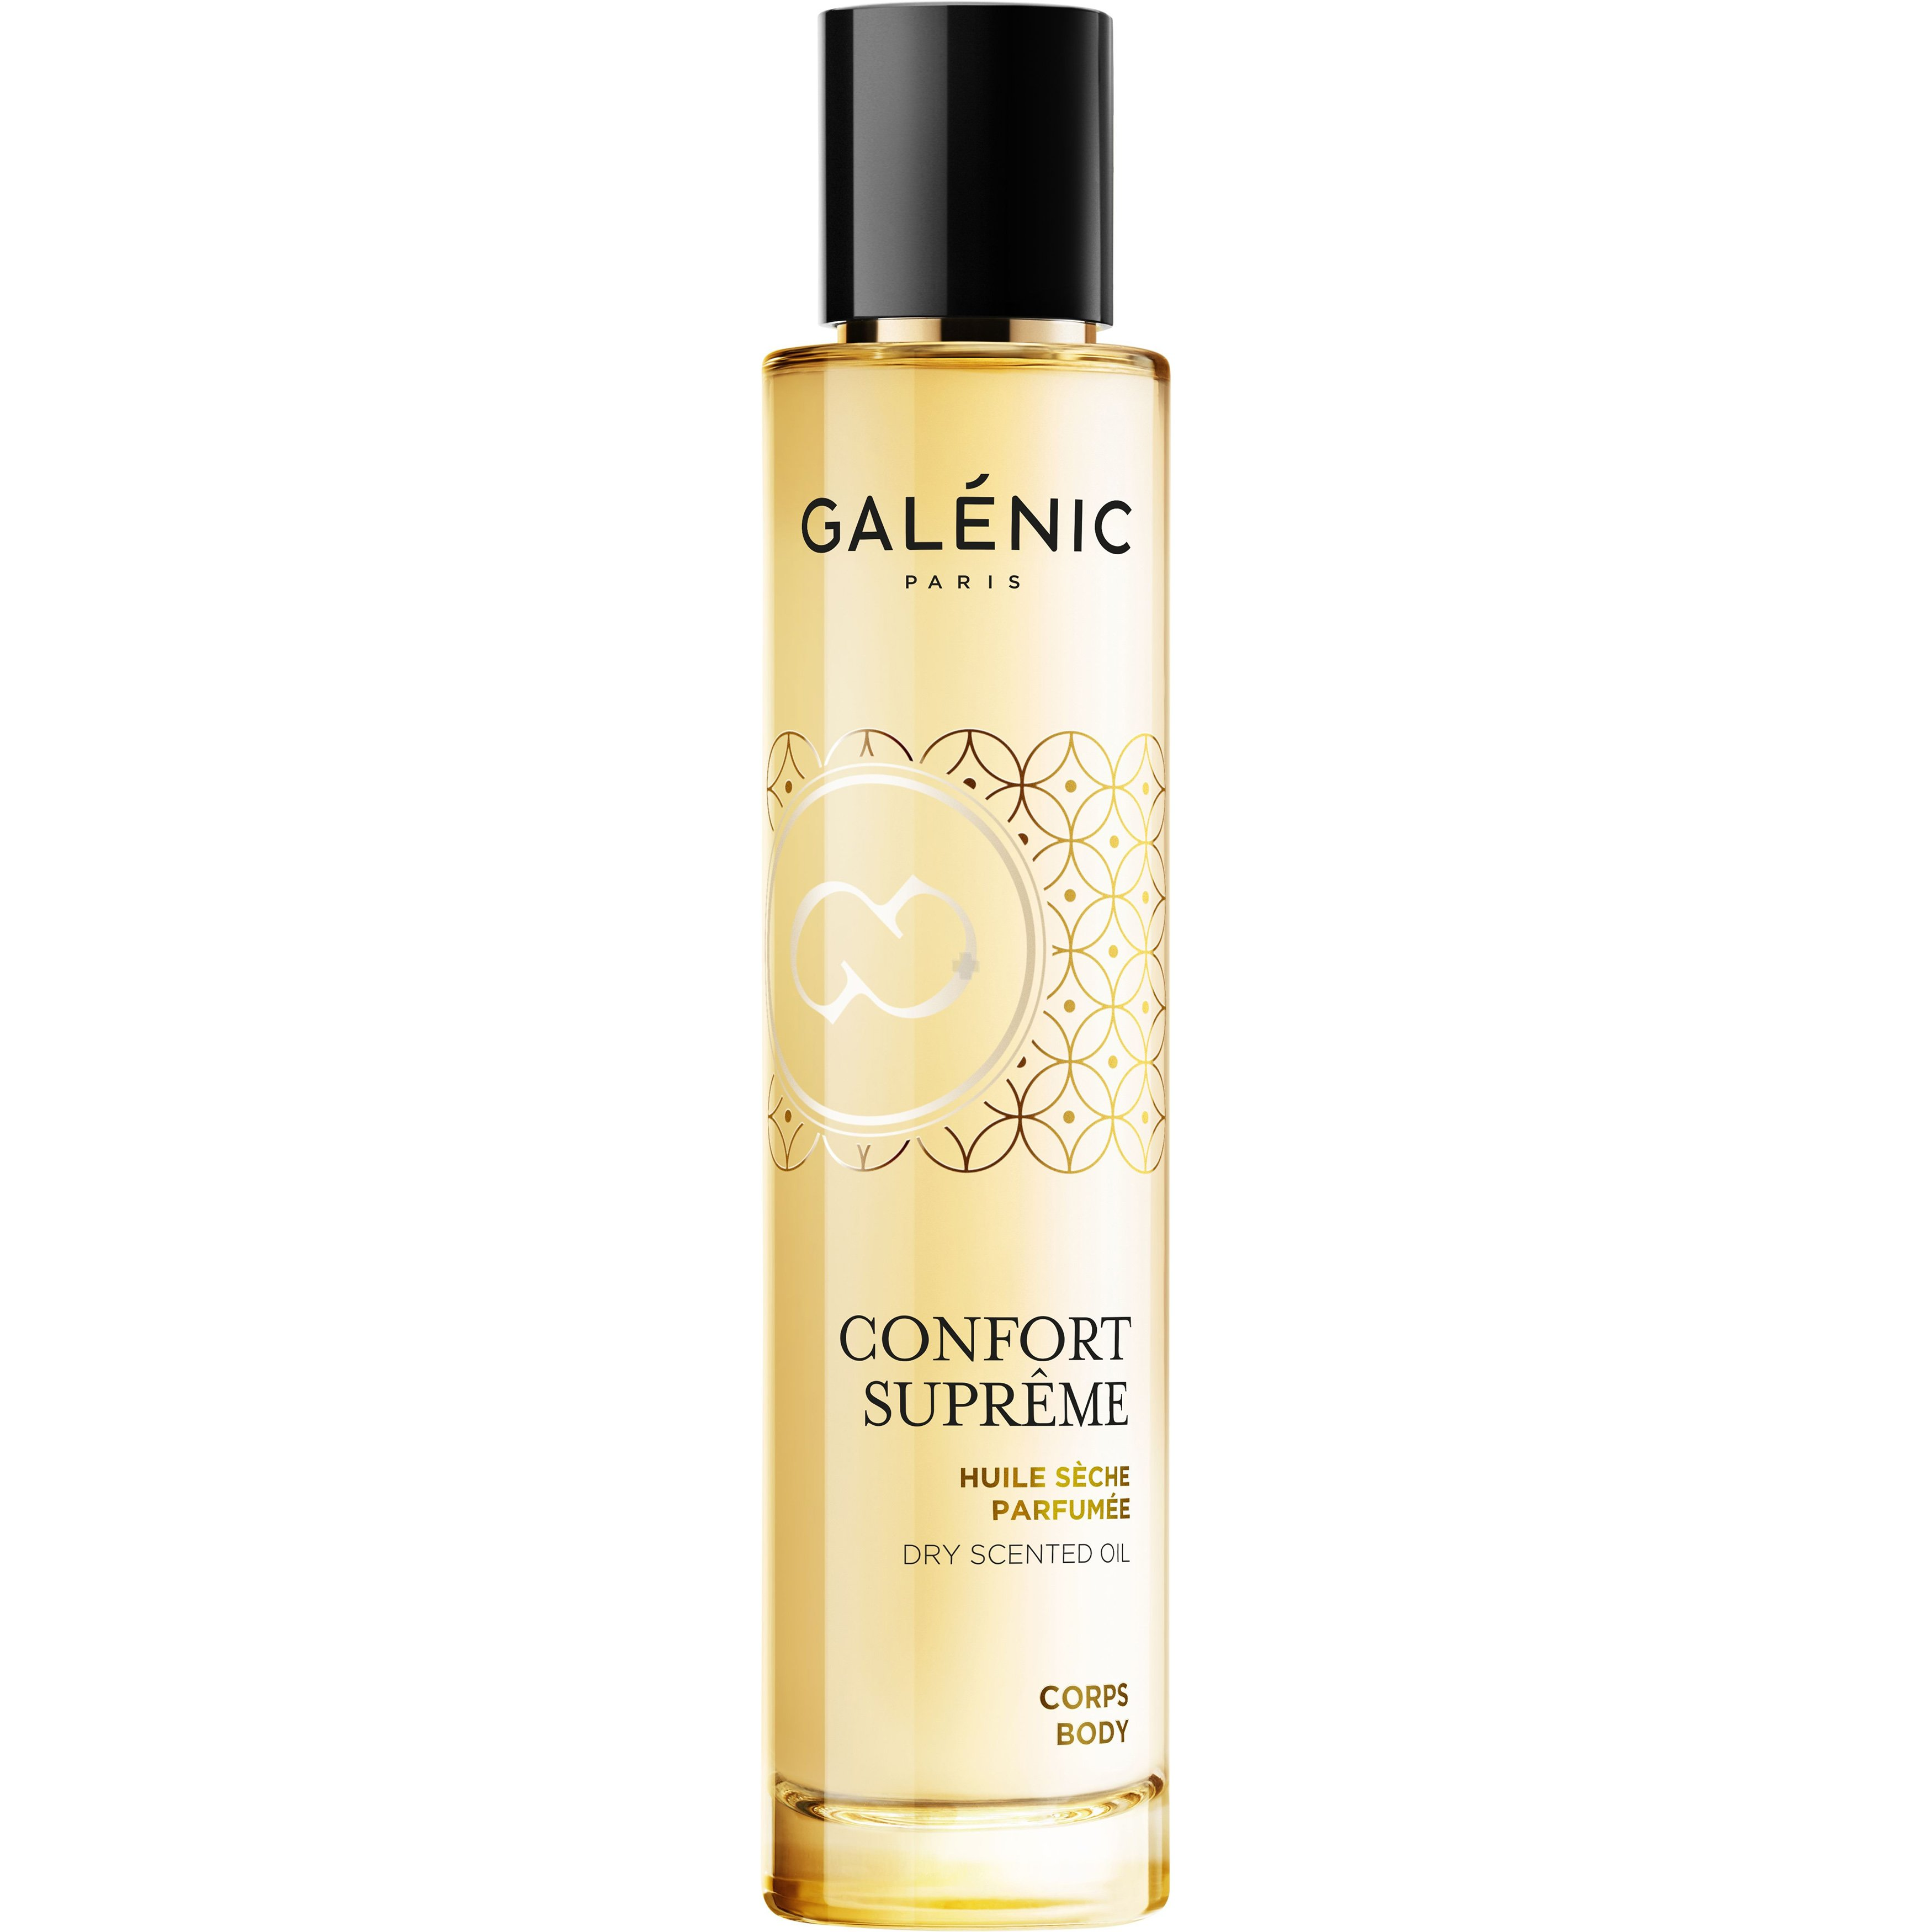 Galenic Confort Supreme Huile Seche Parfume Ξηρό Έλαιο Θρέψης Σώματος 100ml